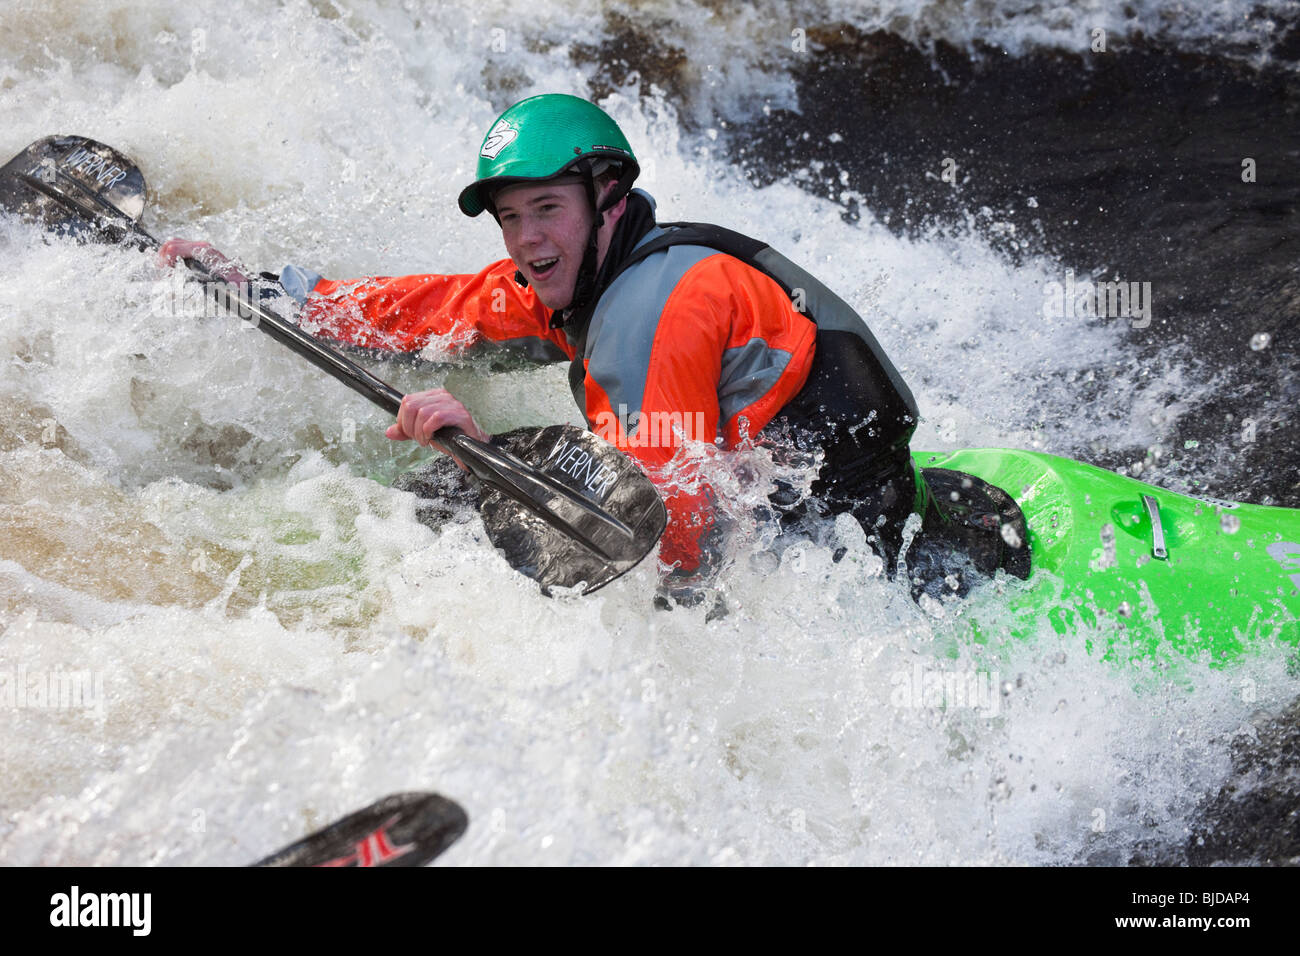 Kayaker kayaking in white water on Tryweryn River. National Whitewater Centre, Frongoch, Gwynedd, North Wales, UK. - Stock Image